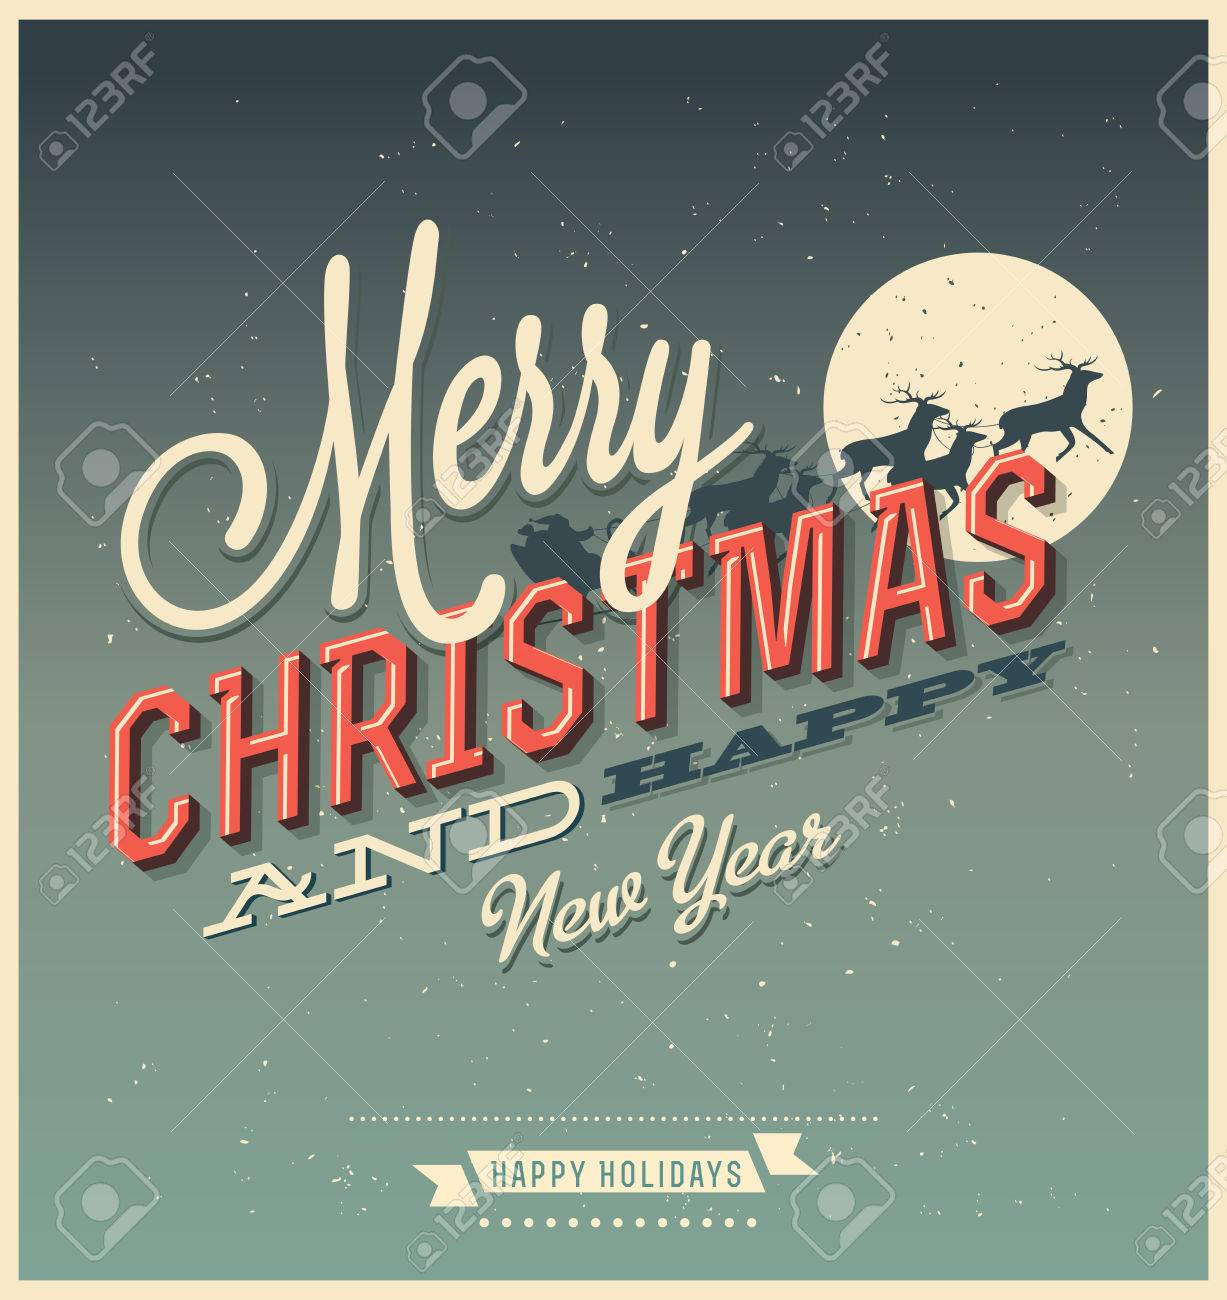 Christmas Retro Revival Old Fashioned Christmas Card 1940 1980 Stock Photo Picture And Royalty Free Image Image 34300522